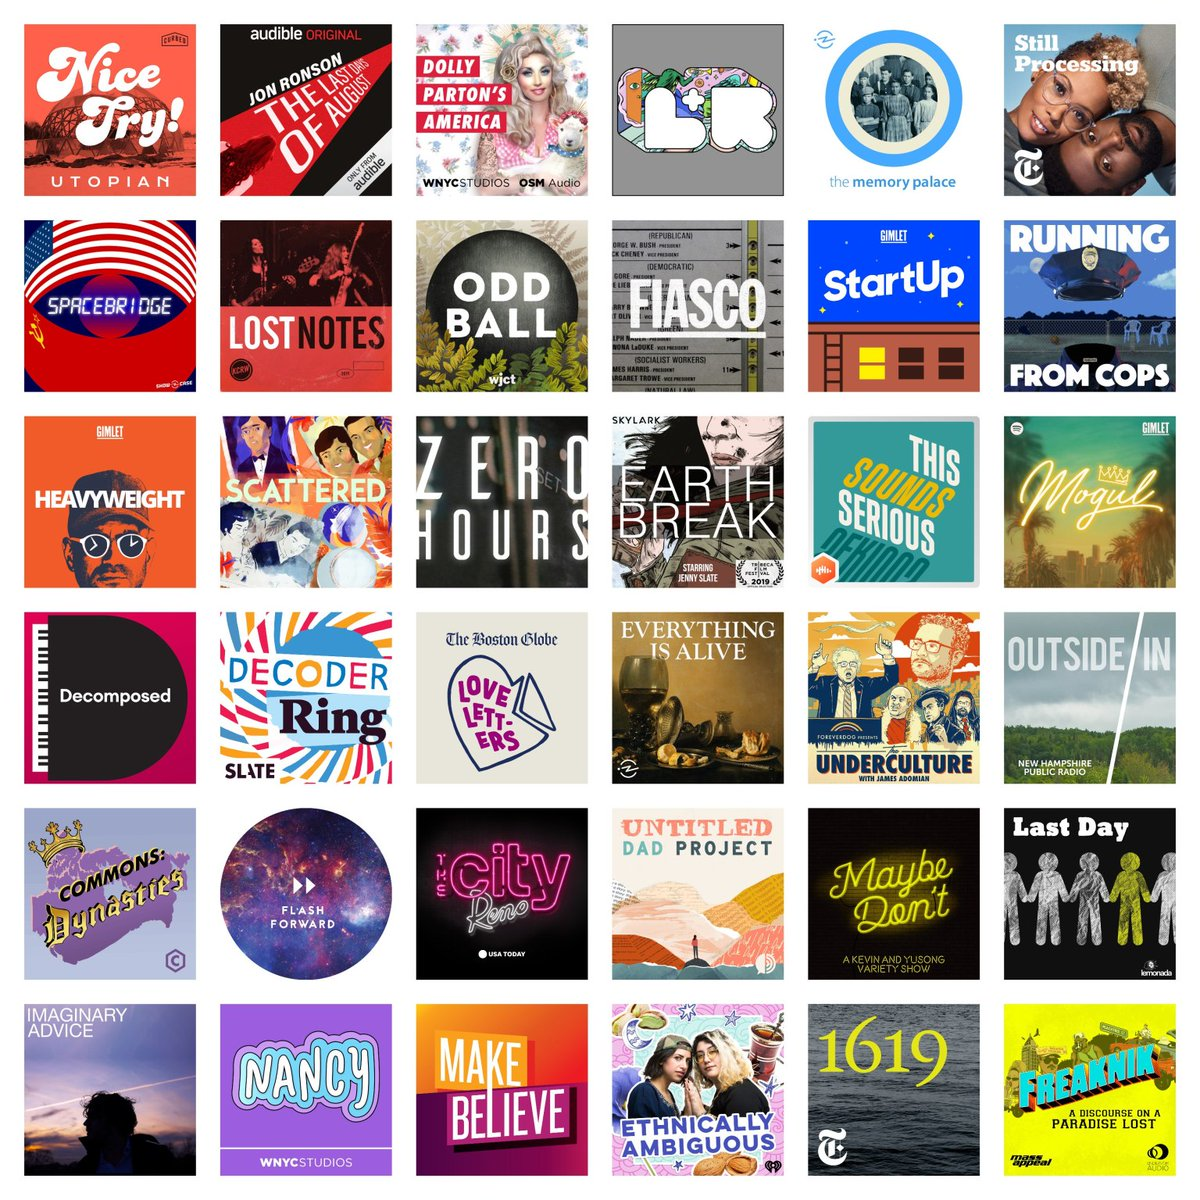 The 50 Best Podcast Episodes of 2019 bit.ly/2PUd9Lb